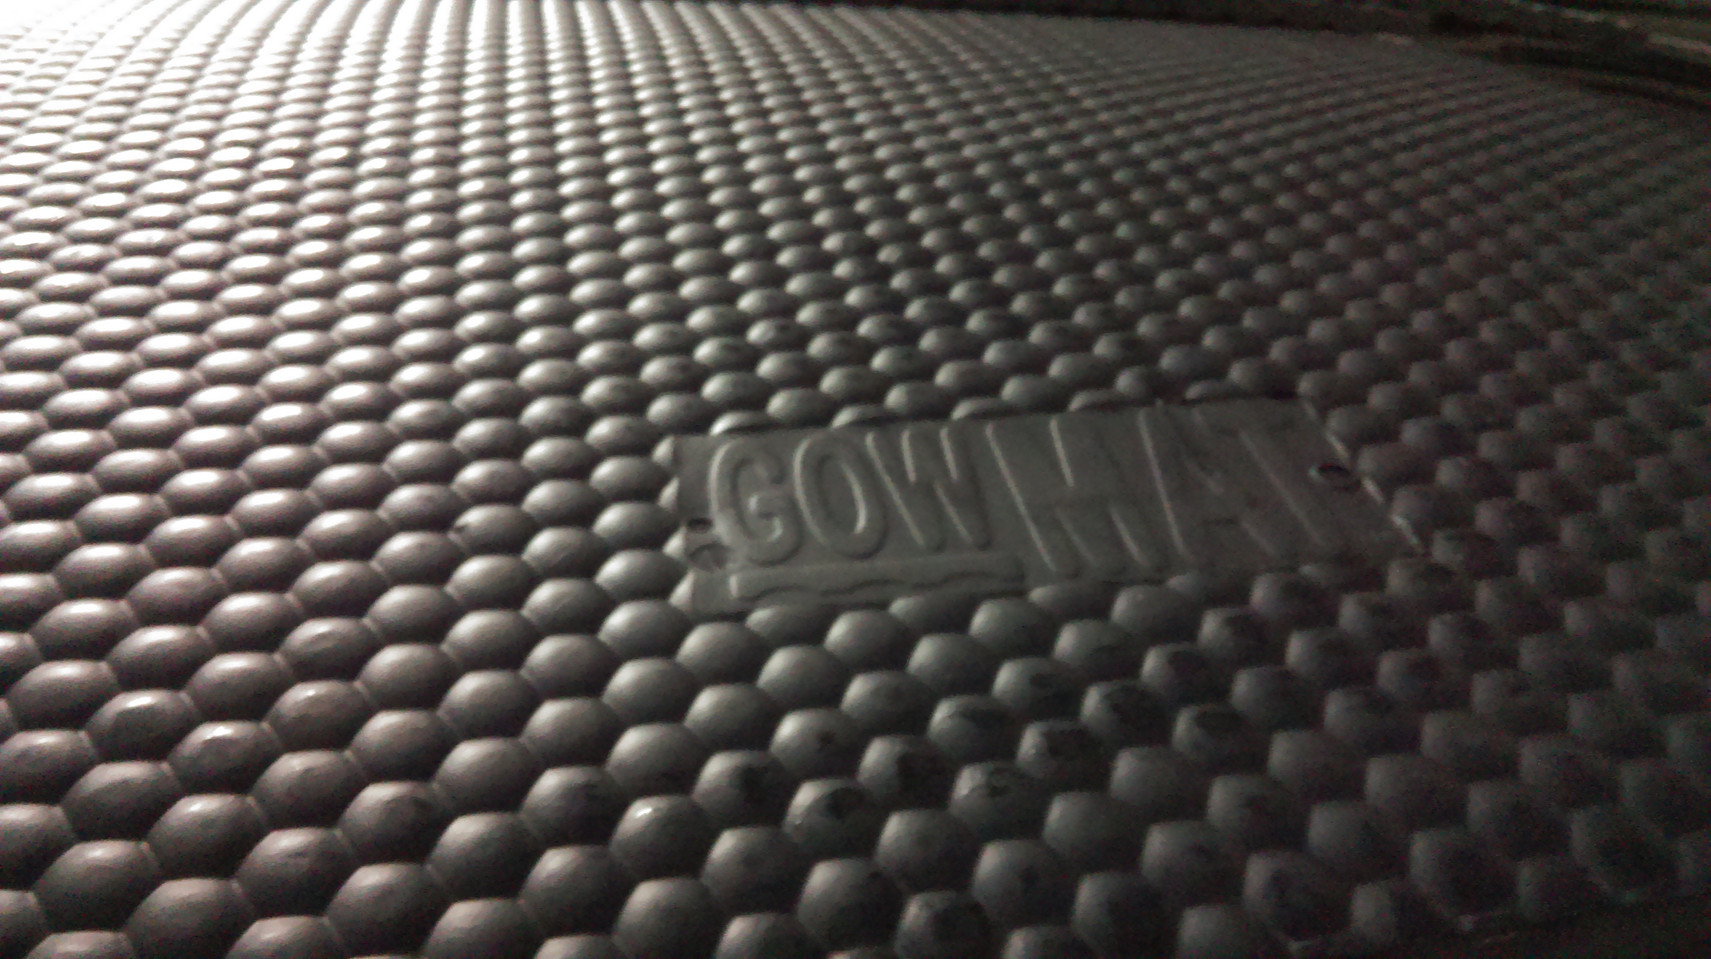 Cow mats manufacturers and suppliers